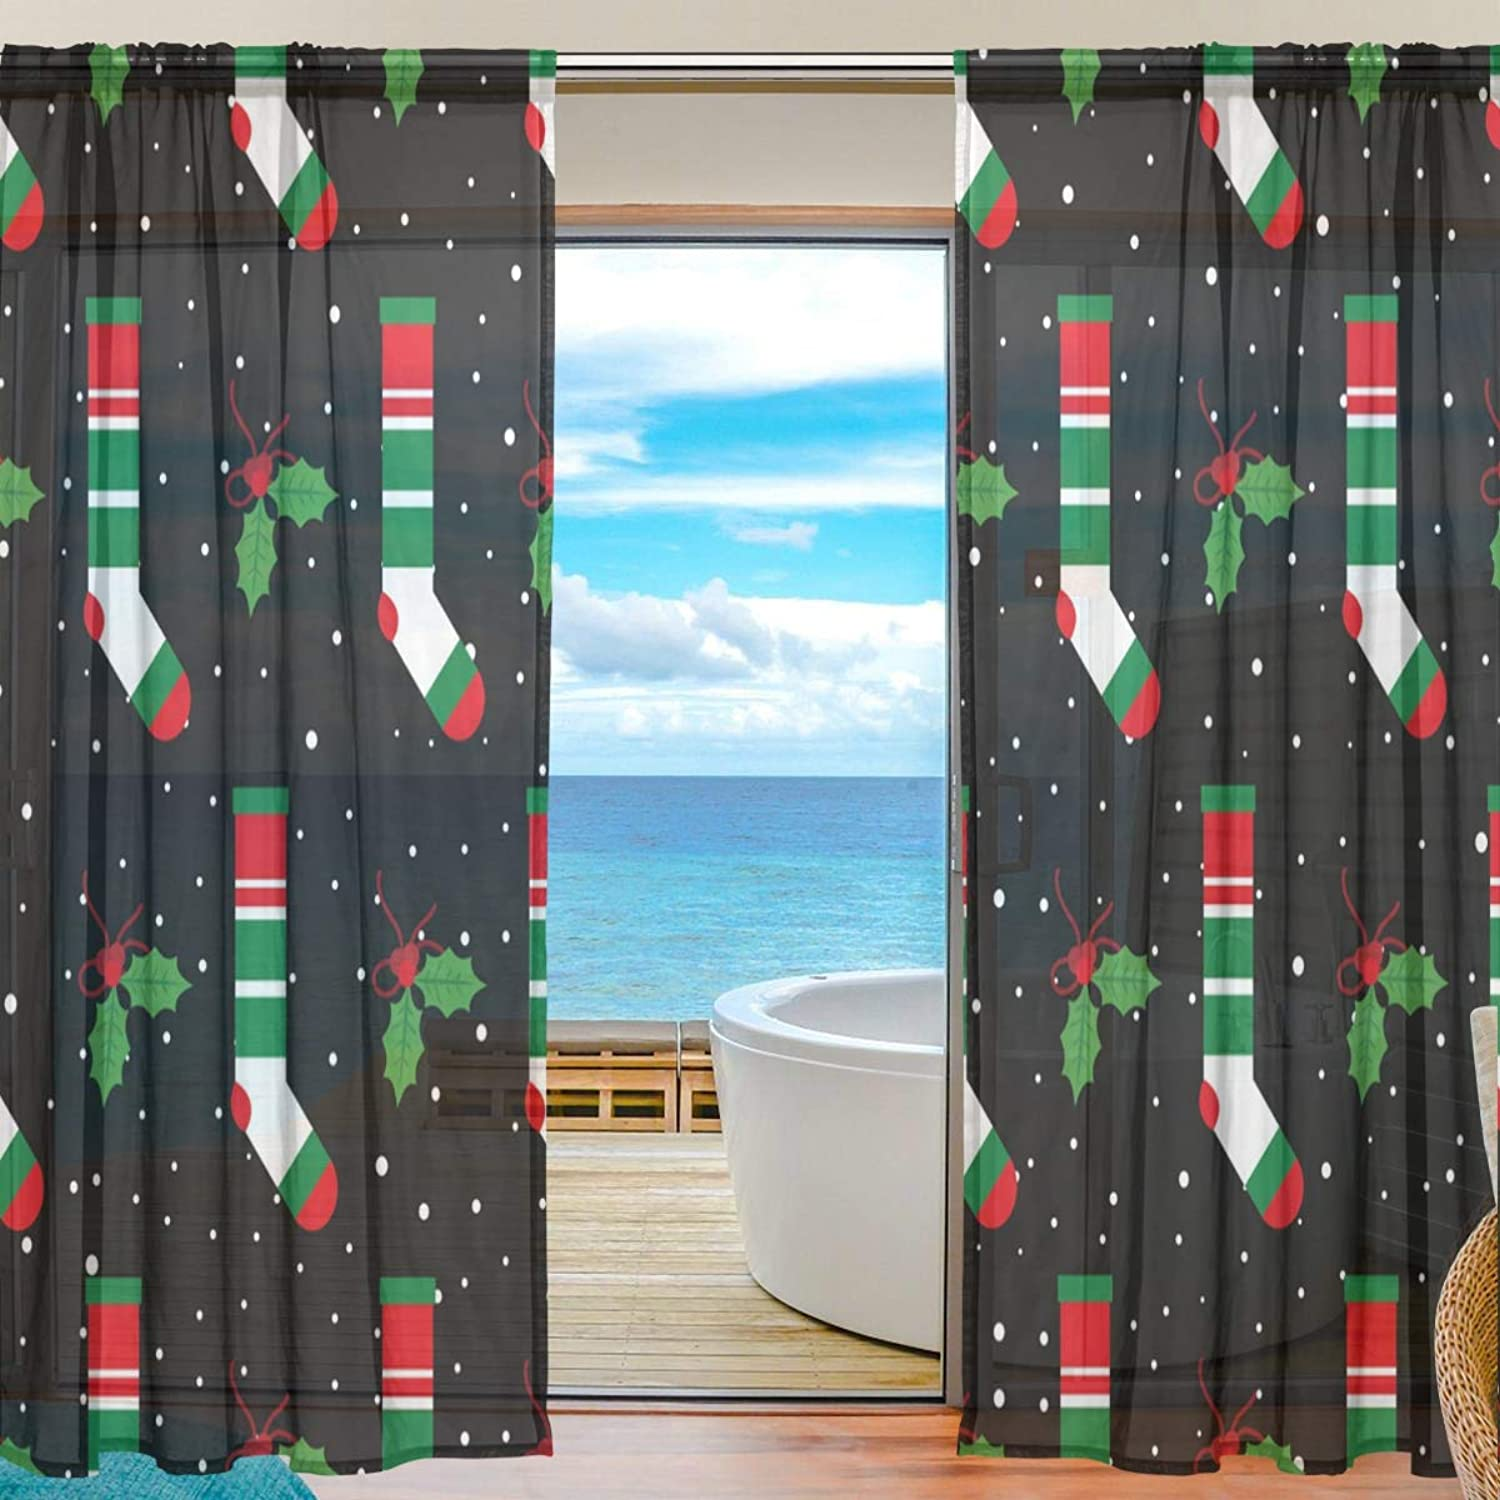 Christmas Socks 2 Pieces Curtain Panel 55 x 78 inches for Bedroom Living Room